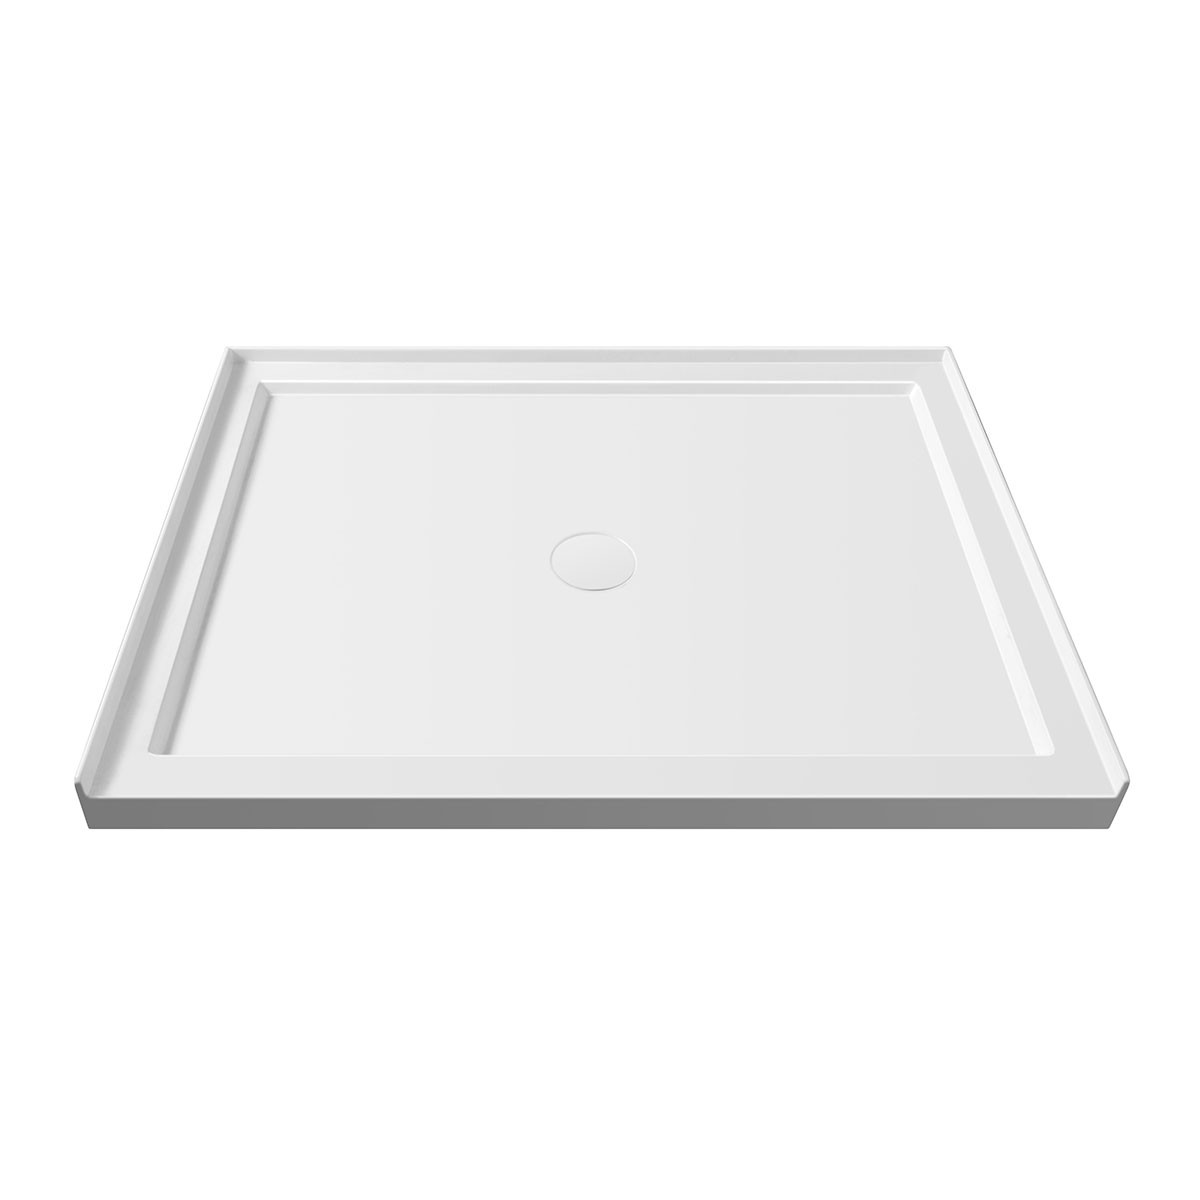 48 x 36 In Rectangular Shower Base for Universal Installation (DK-STA-18001)